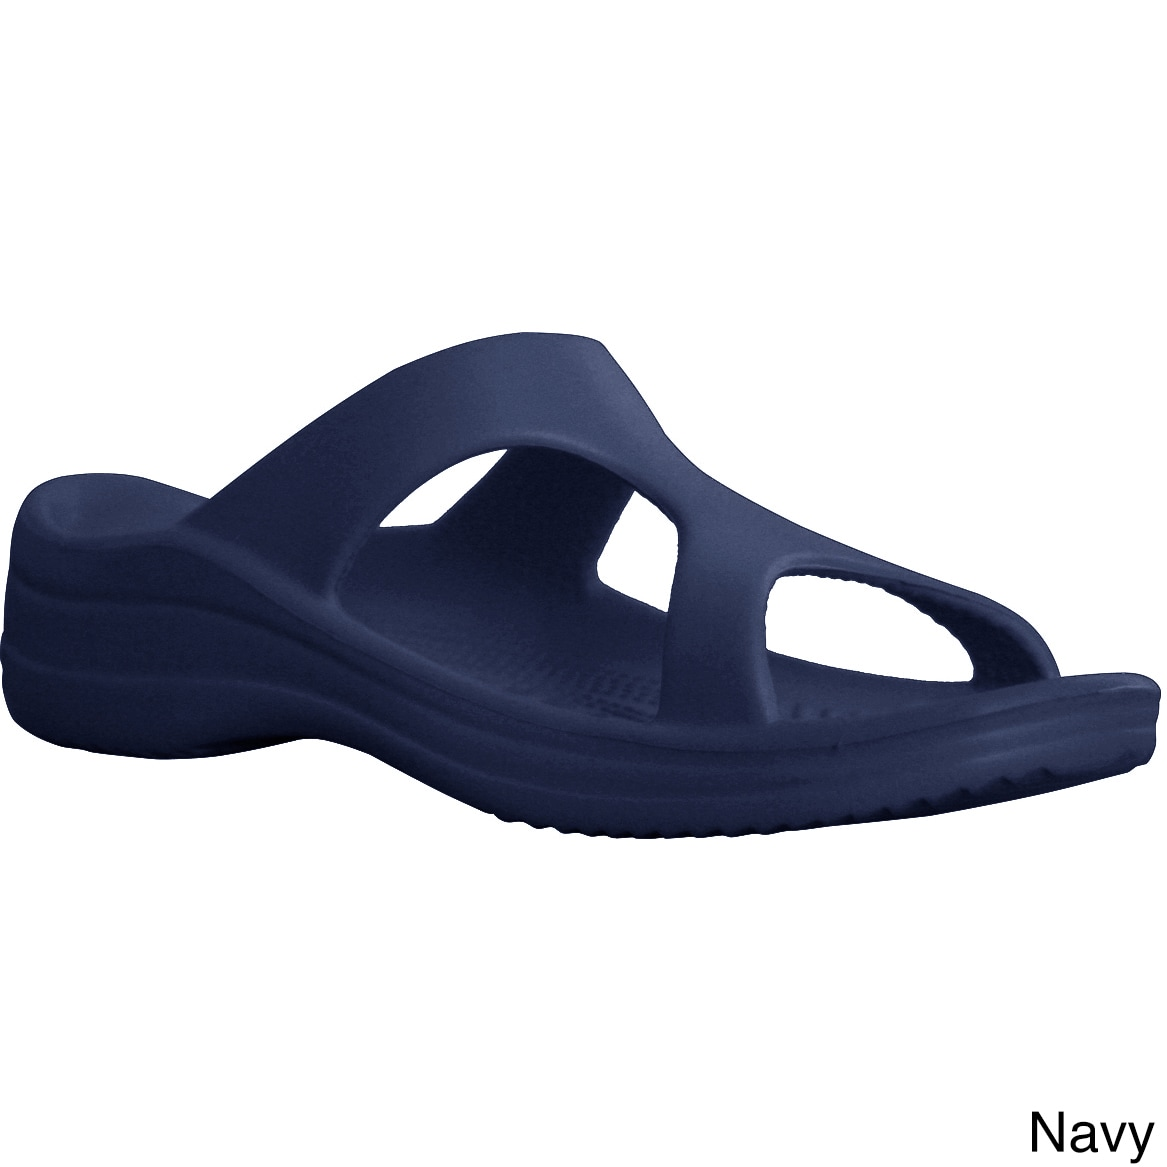 01a24ec566c8 Shop Dawgs Women s X Sandal - On Sale - Ships To Canada - Overstock -  10291042